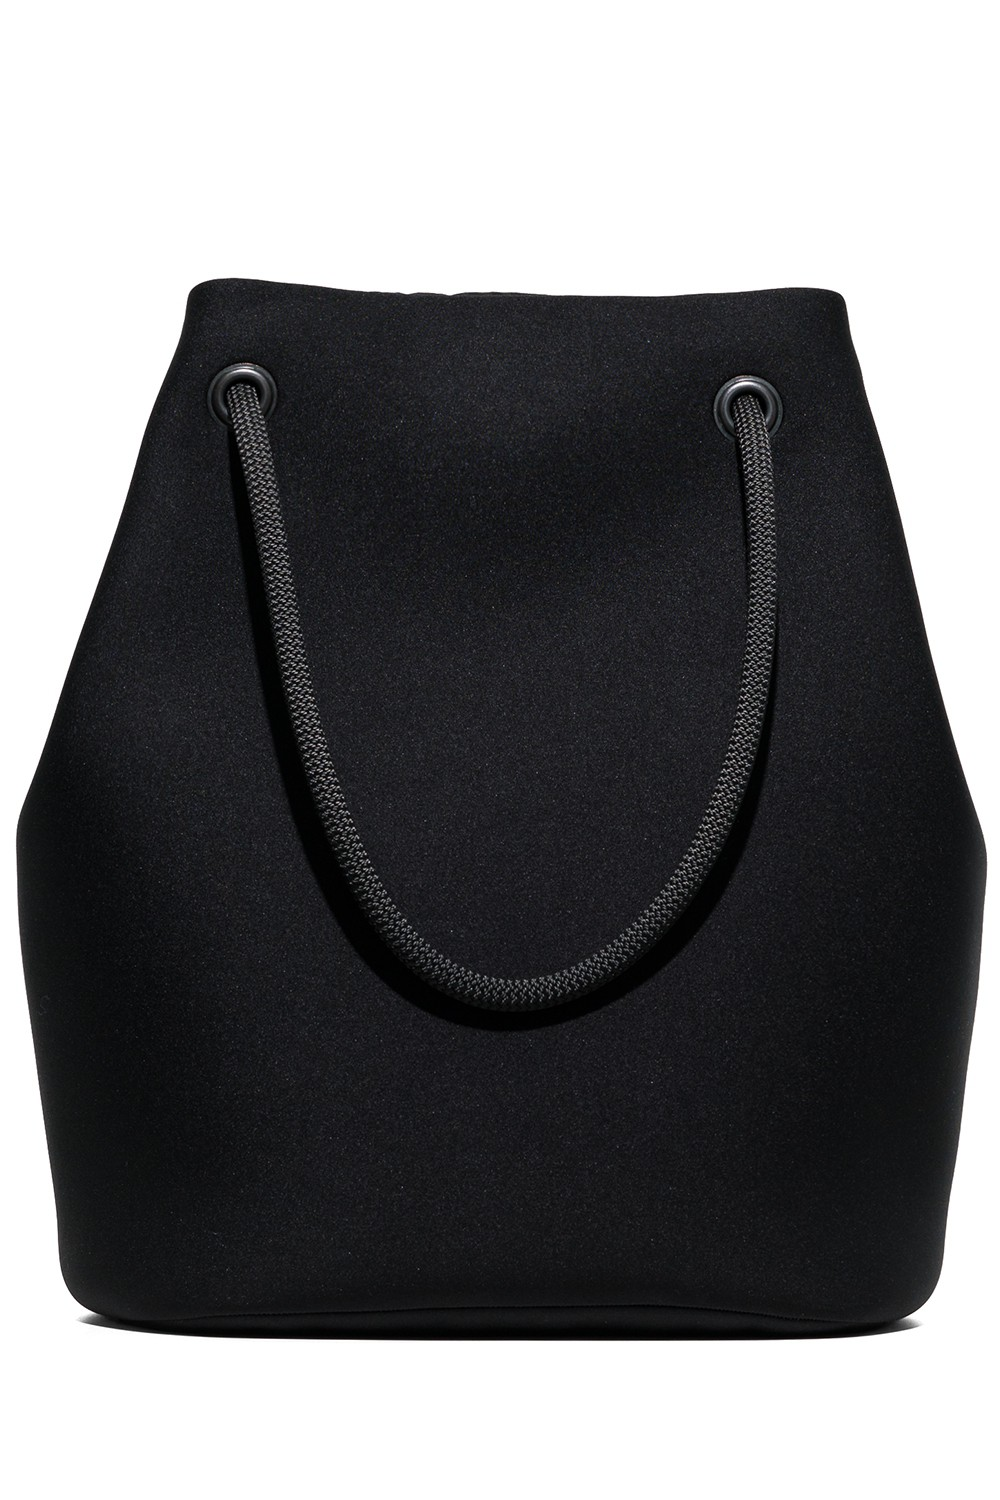 Embee Black Shopper